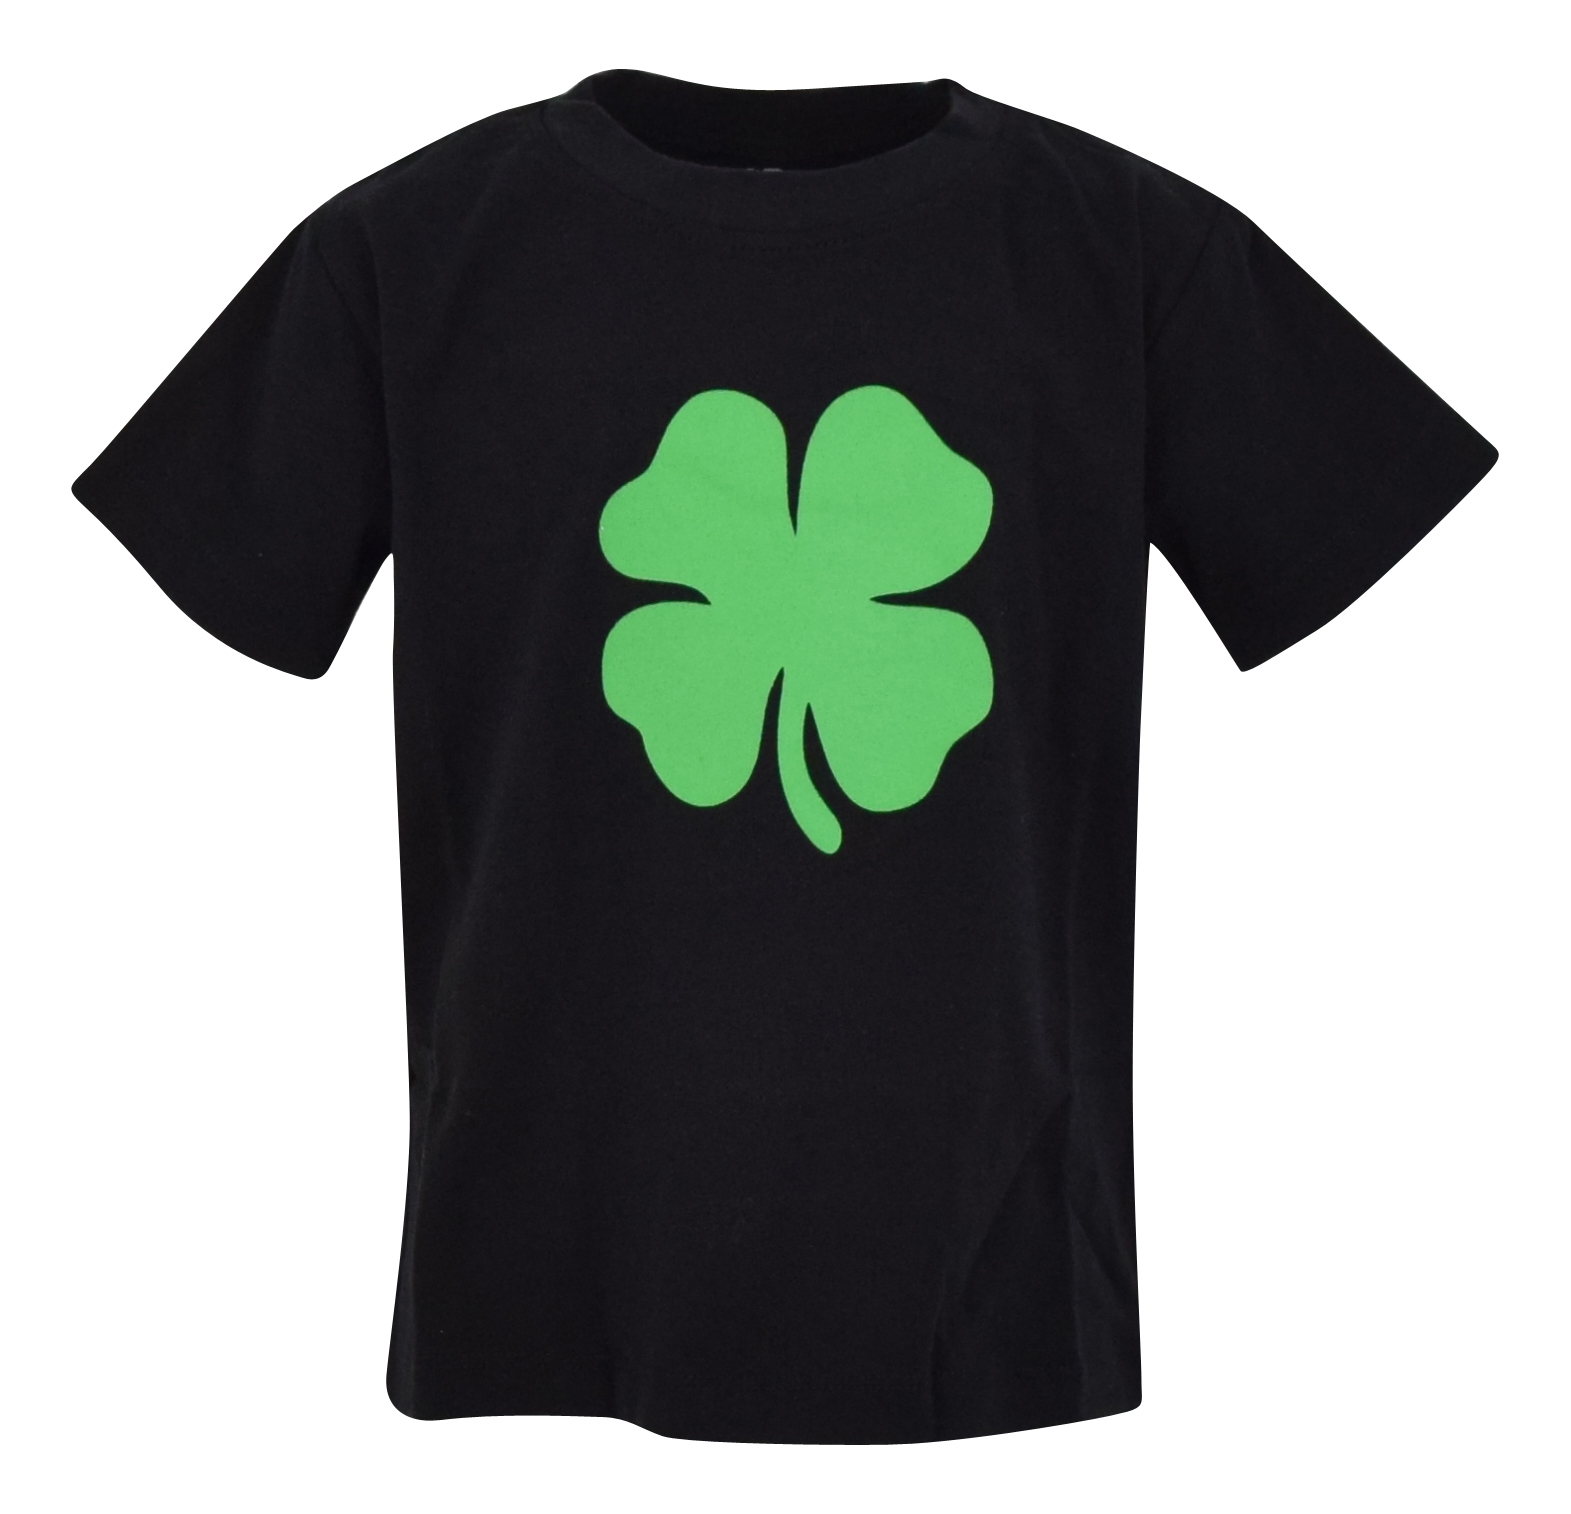 Boys-2-Piece-ST-Patricks-Day-Clover-Outfit-2t-3t-4t-5-6-7-8-Toddler-Kids-Clothes thumbnail 17